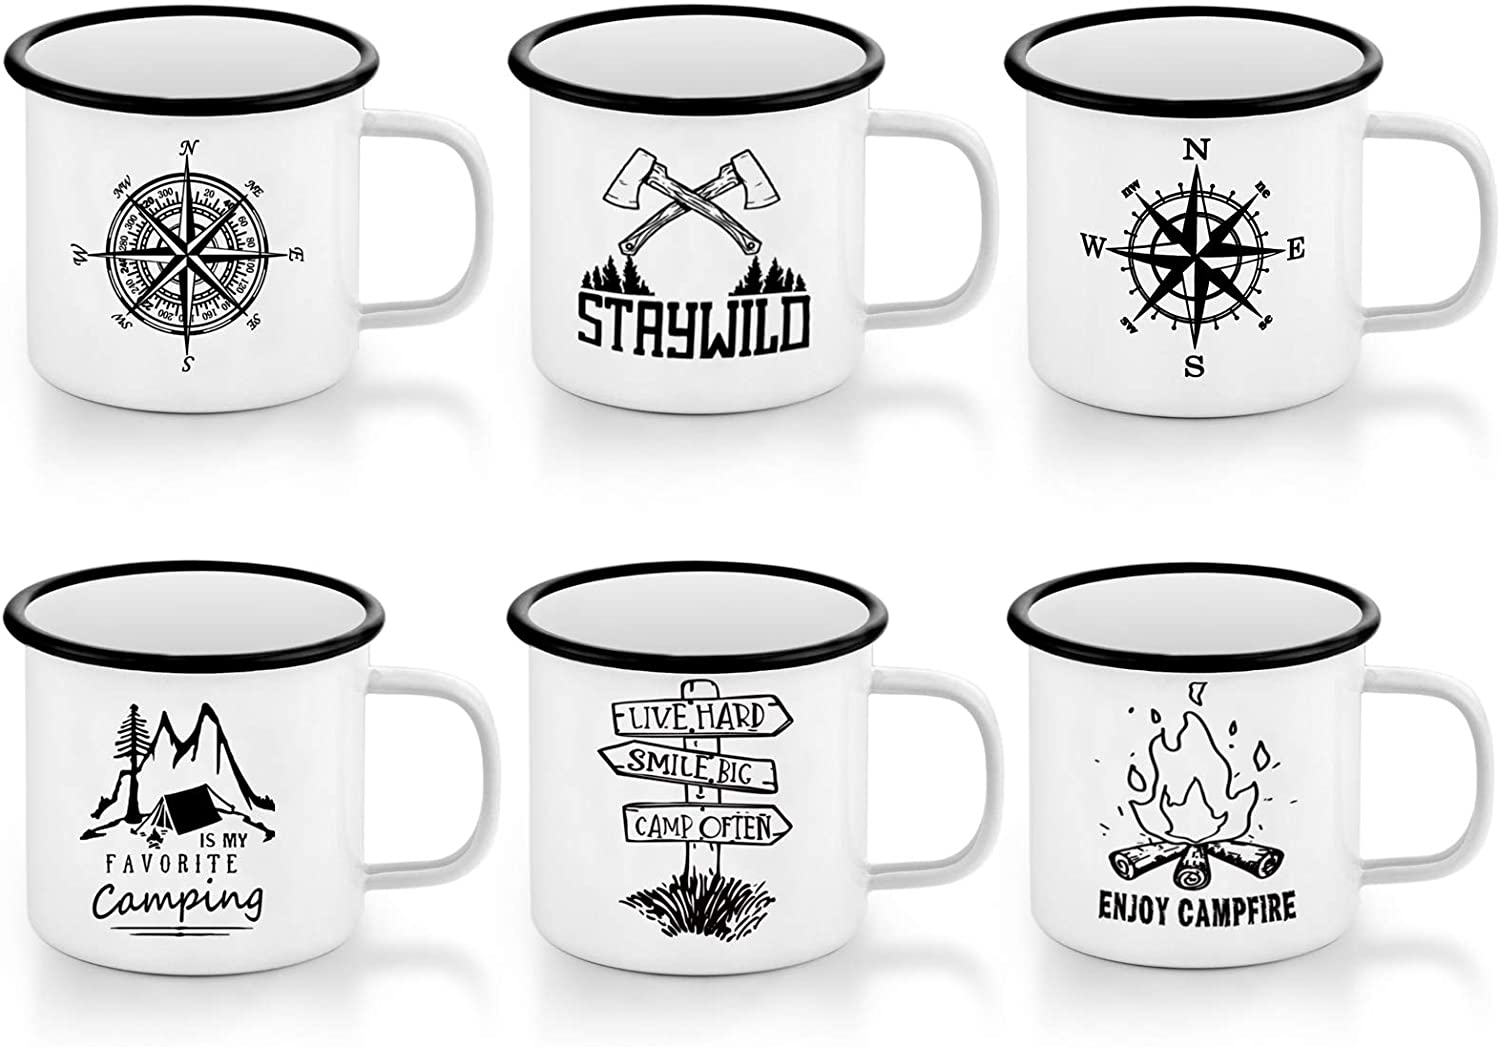 E-far Enamel Camping Mug Set of 6, 16 Ounce Metal Enamel Coffee Tea Cups Mugs for Camping Hiking Backpacking, 2-Sided Unique Graphic Design & Large Size